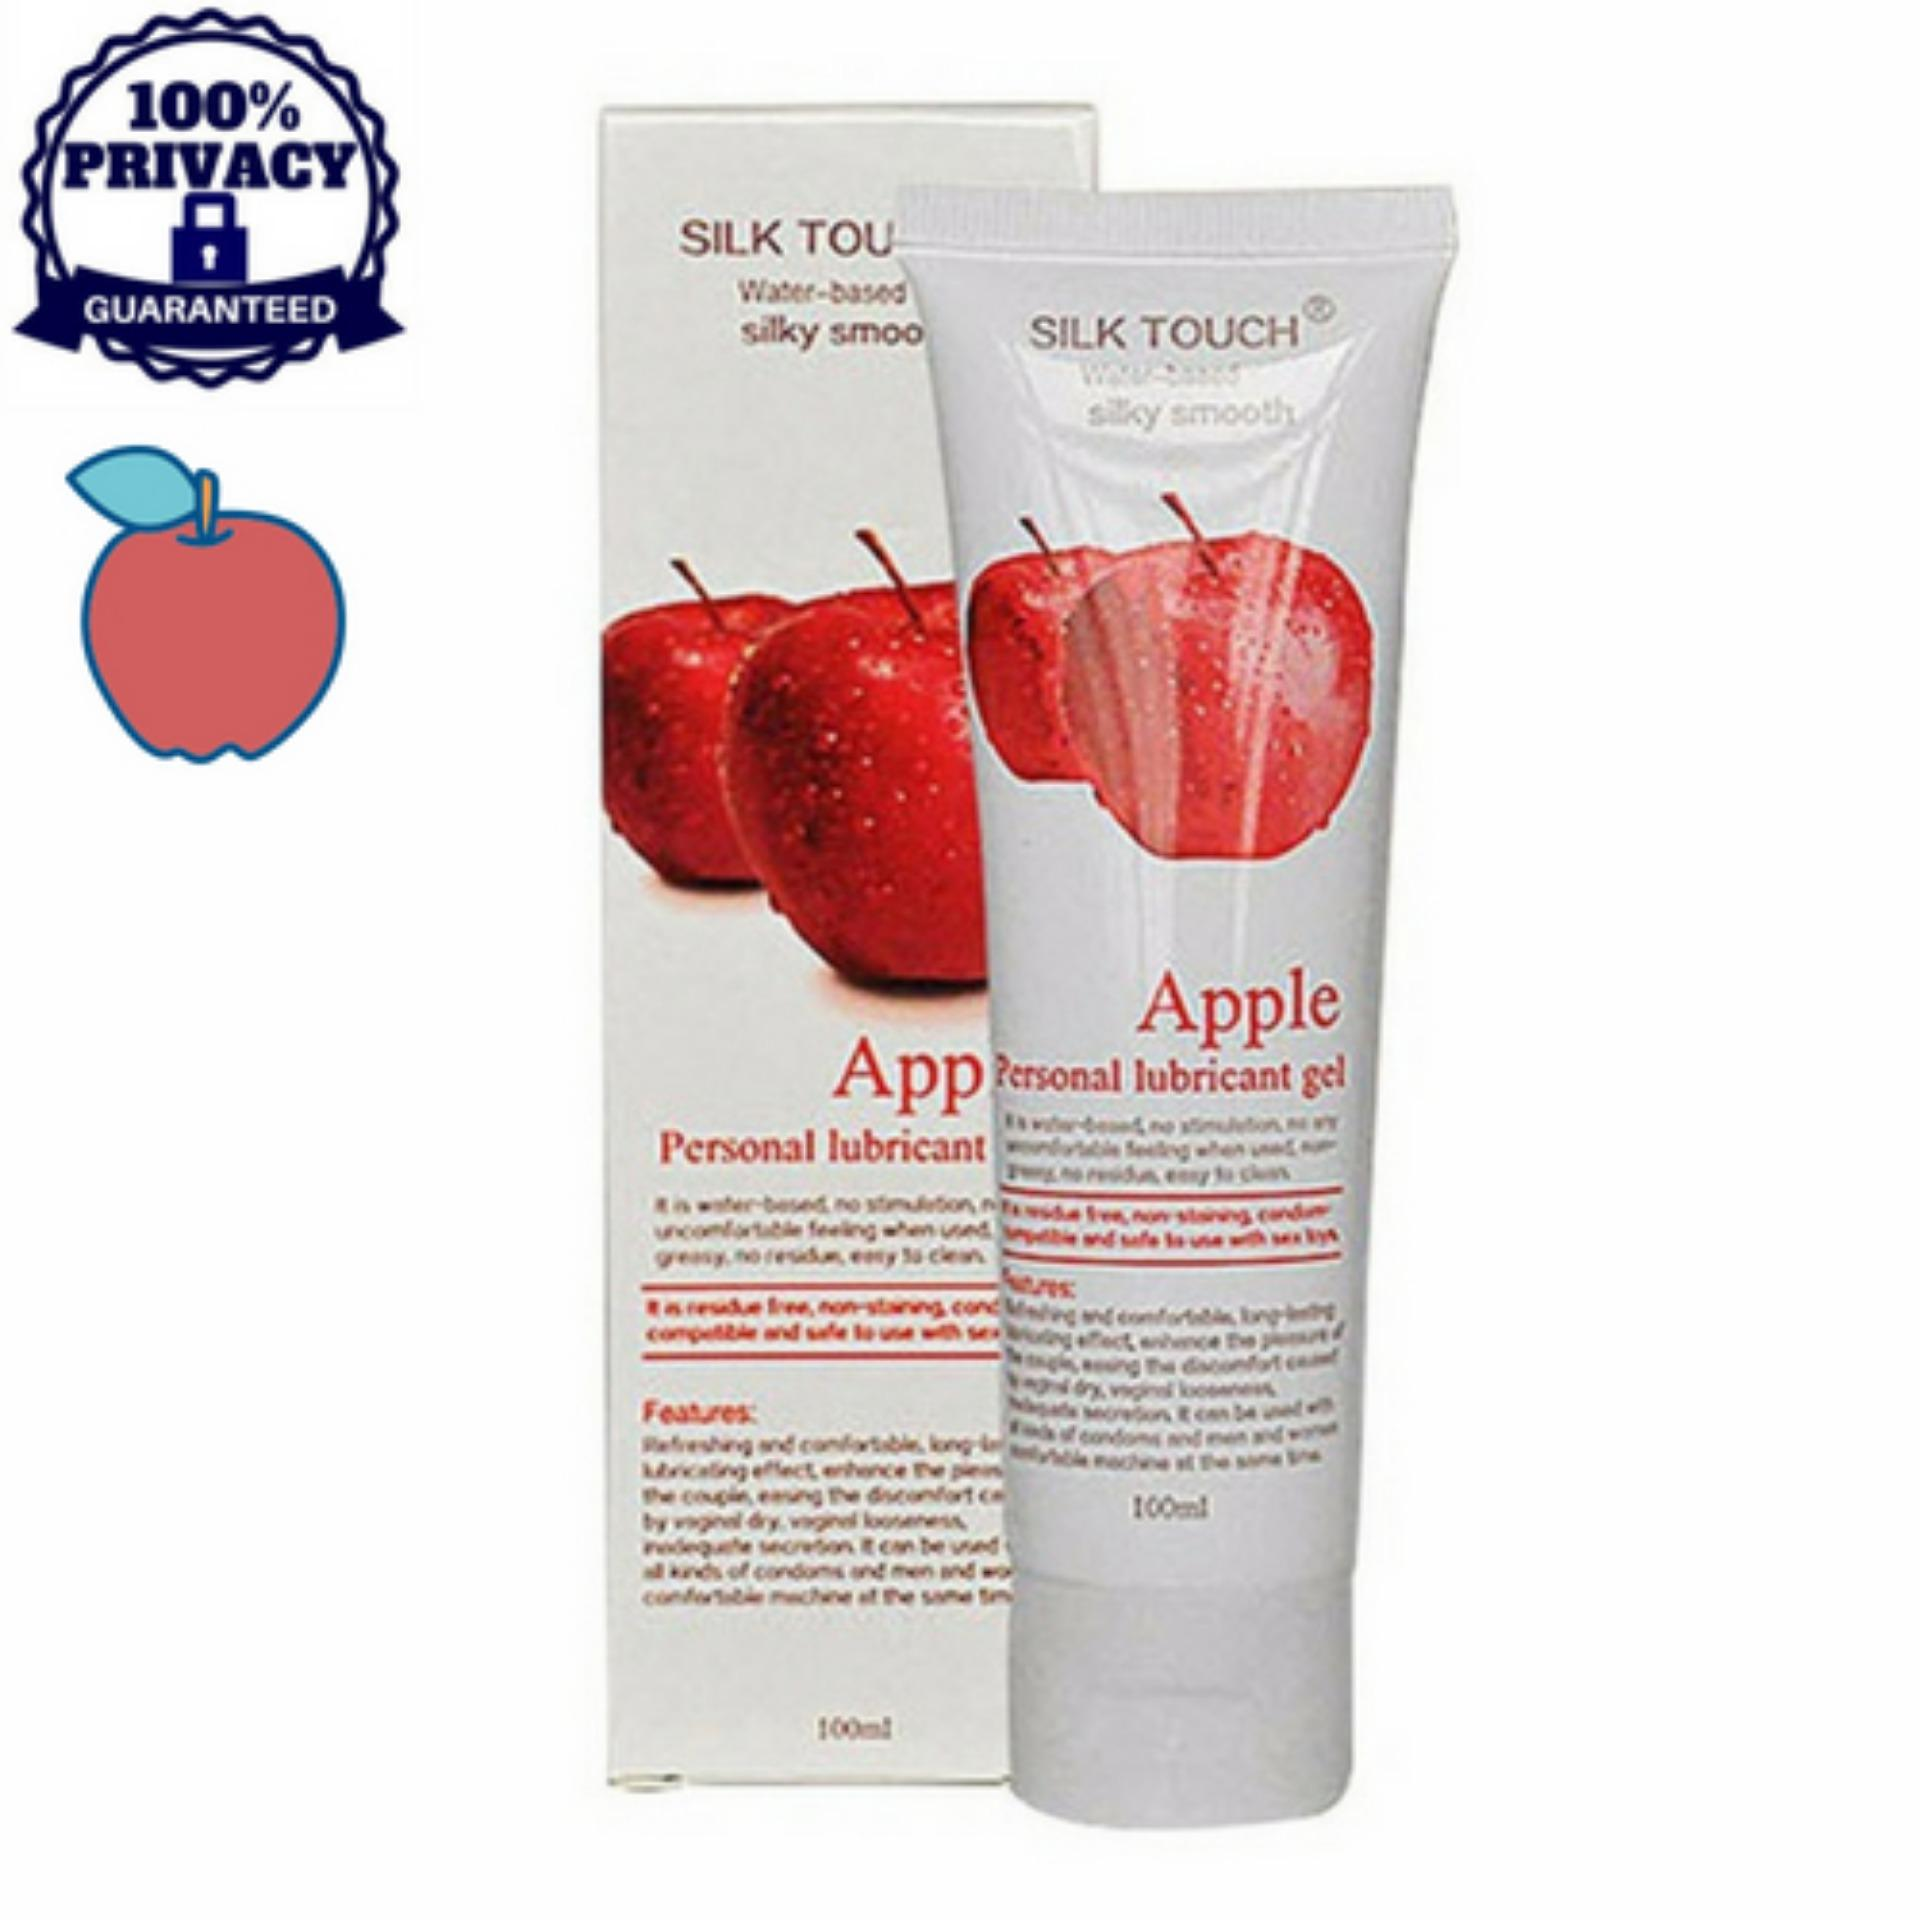 Secret Corner Silk Touch 100ml Water Based Flavored Lubricant - Apple By Secret Corner.